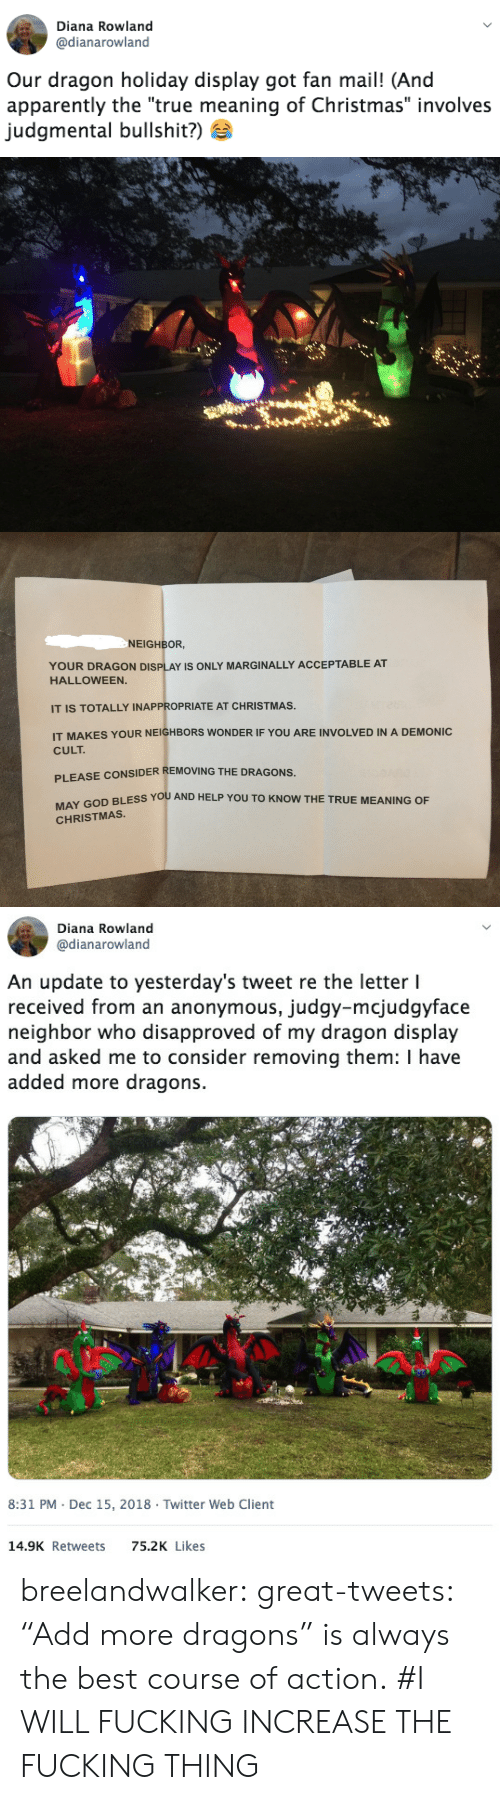 "diana: Diana Rowland  @dianarowland  Our dragon holiday display got fan mail! (And  apparently the ""true meaning of Christmas"" involves  Judgmental bullshit?)   NEIGHBOR  YOUR DRAGON DISPLAY IS ONLY MARGINALLY ACCEPTABLE AT  HALLOWEEN.  IT IS TOTALLY INAPPROPRIATE AT CHRISTMAS.  IT MAKES YOUR NEIGHBORS WONDER IF YOU ARE INVOLVED IN A DEMONIC  CULT  PLEASE CONSIDER REMOVING THE DRAGONS.  GO BLESS YOU AND HELP YOU TO KNOW THE TRUE MEANING OF  CHRISTMAS   Diana Rowland  @dianarowland  An update to yesterday's tweet re the letter l  received from an anonymous, judgy-mciudgvface  neighbor who disapproved of my dragon display  and asked me to consider removing them: I have  added more dragons.  8:31 PM Dec 15, 2018 Twitter Web Client  14.9K Retweets  75.2K Likes breelandwalker: great-tweets: ""Add more dragons"" is always the best course of action. #I WILL FUCKING INCREASE THE FUCKING THING"